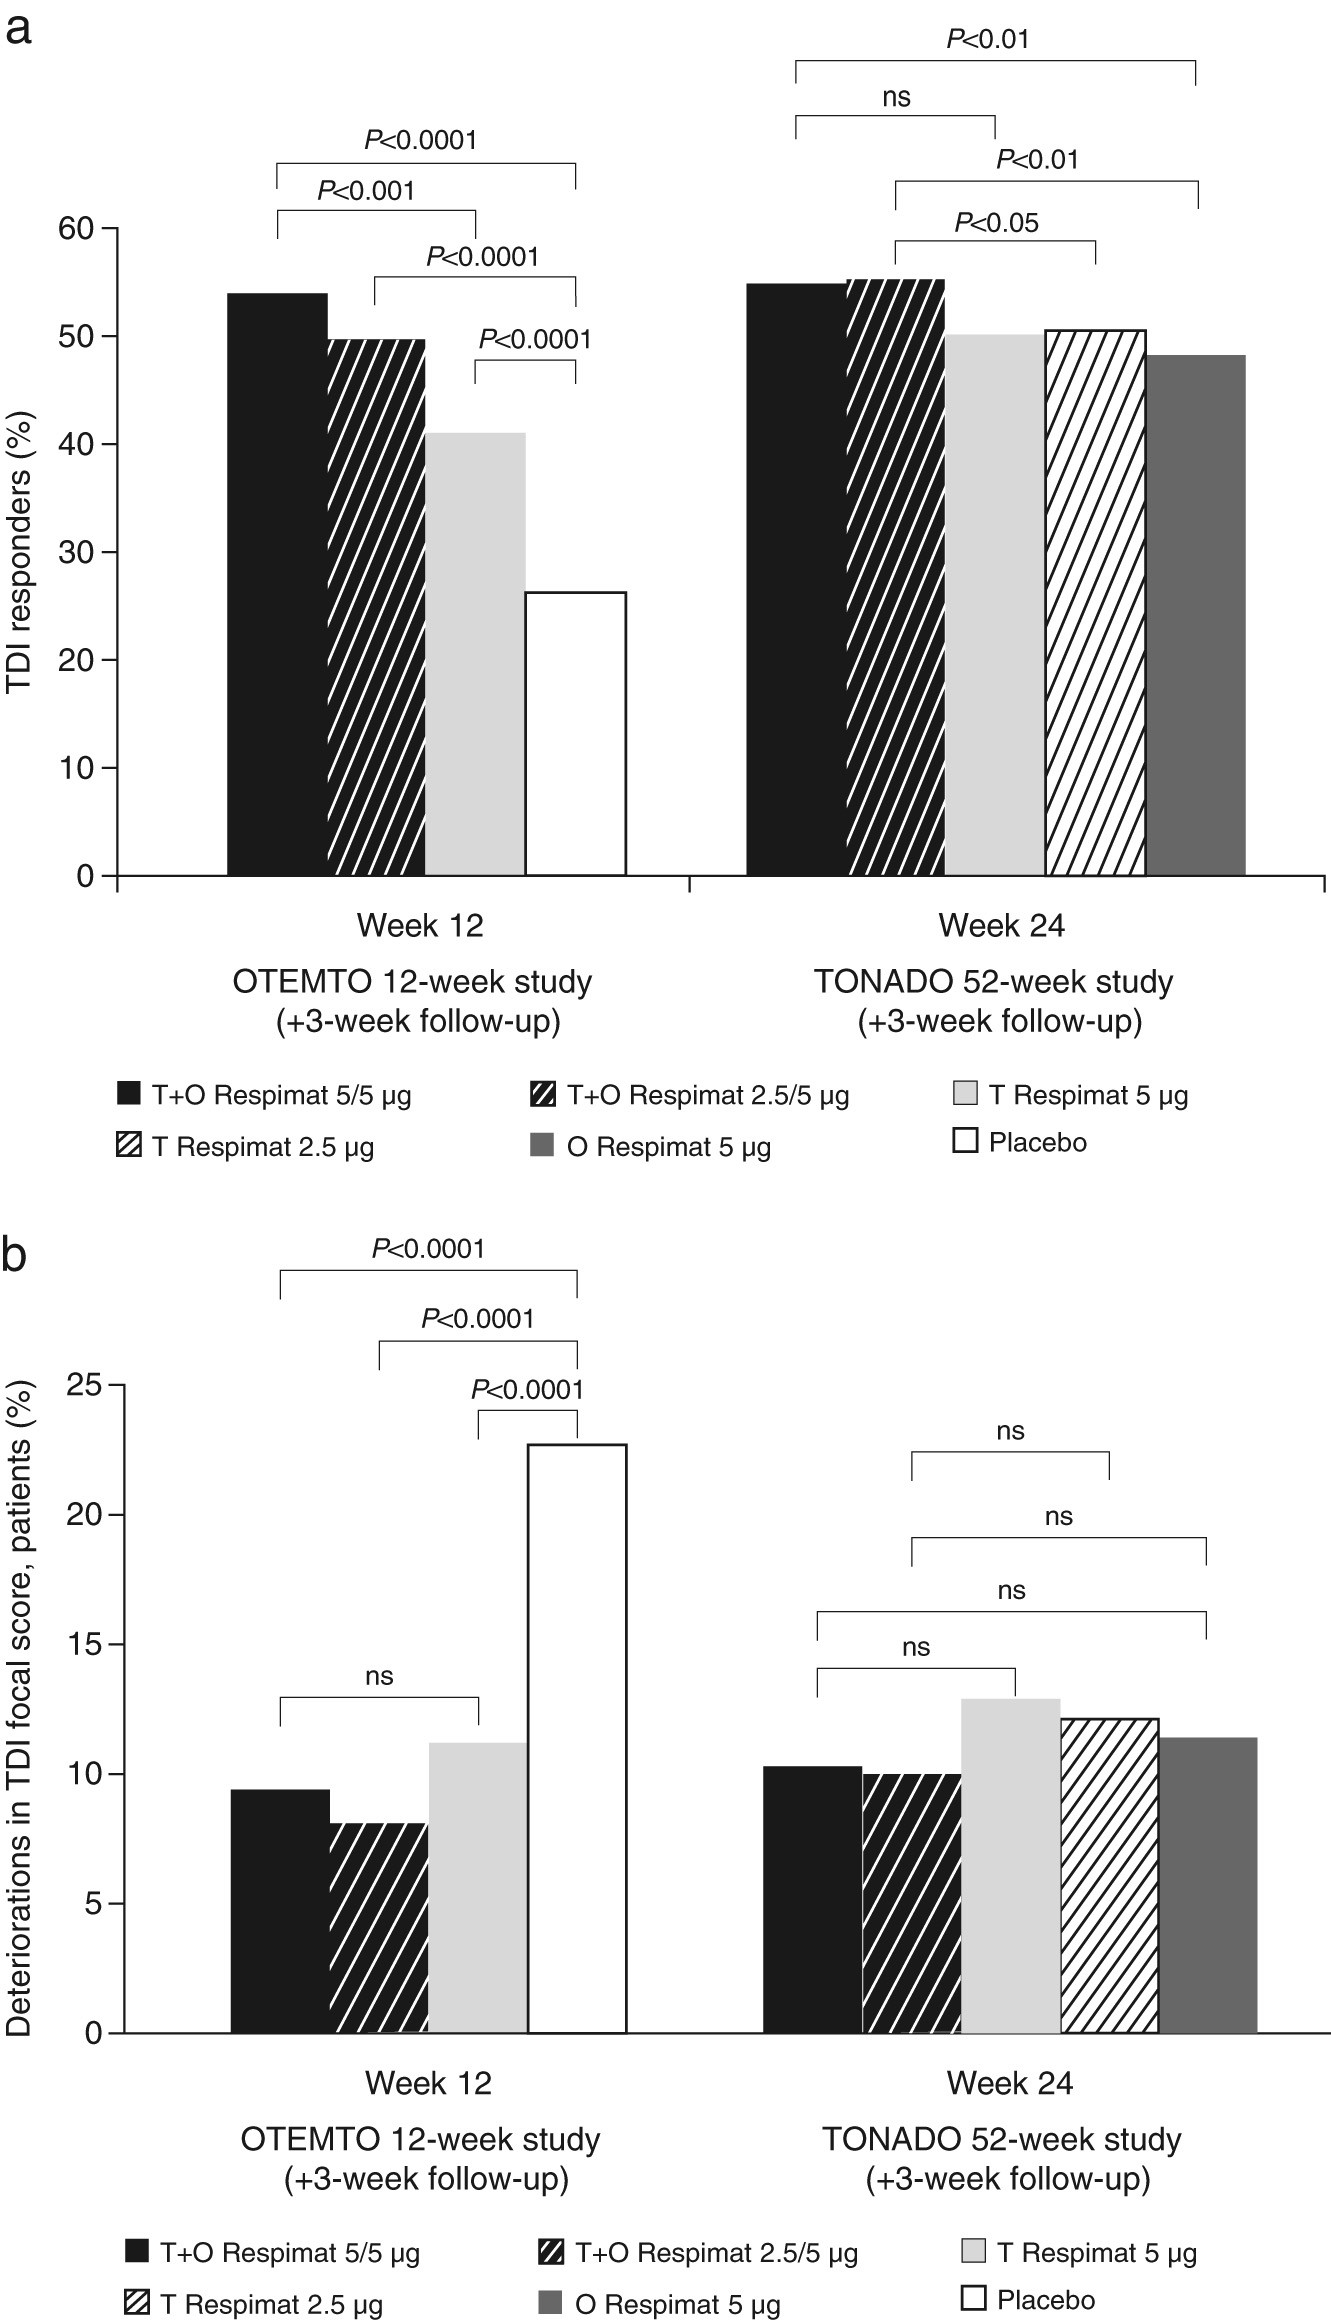 Effect of tiotropium and olodaterol on symptoms and patient-reported